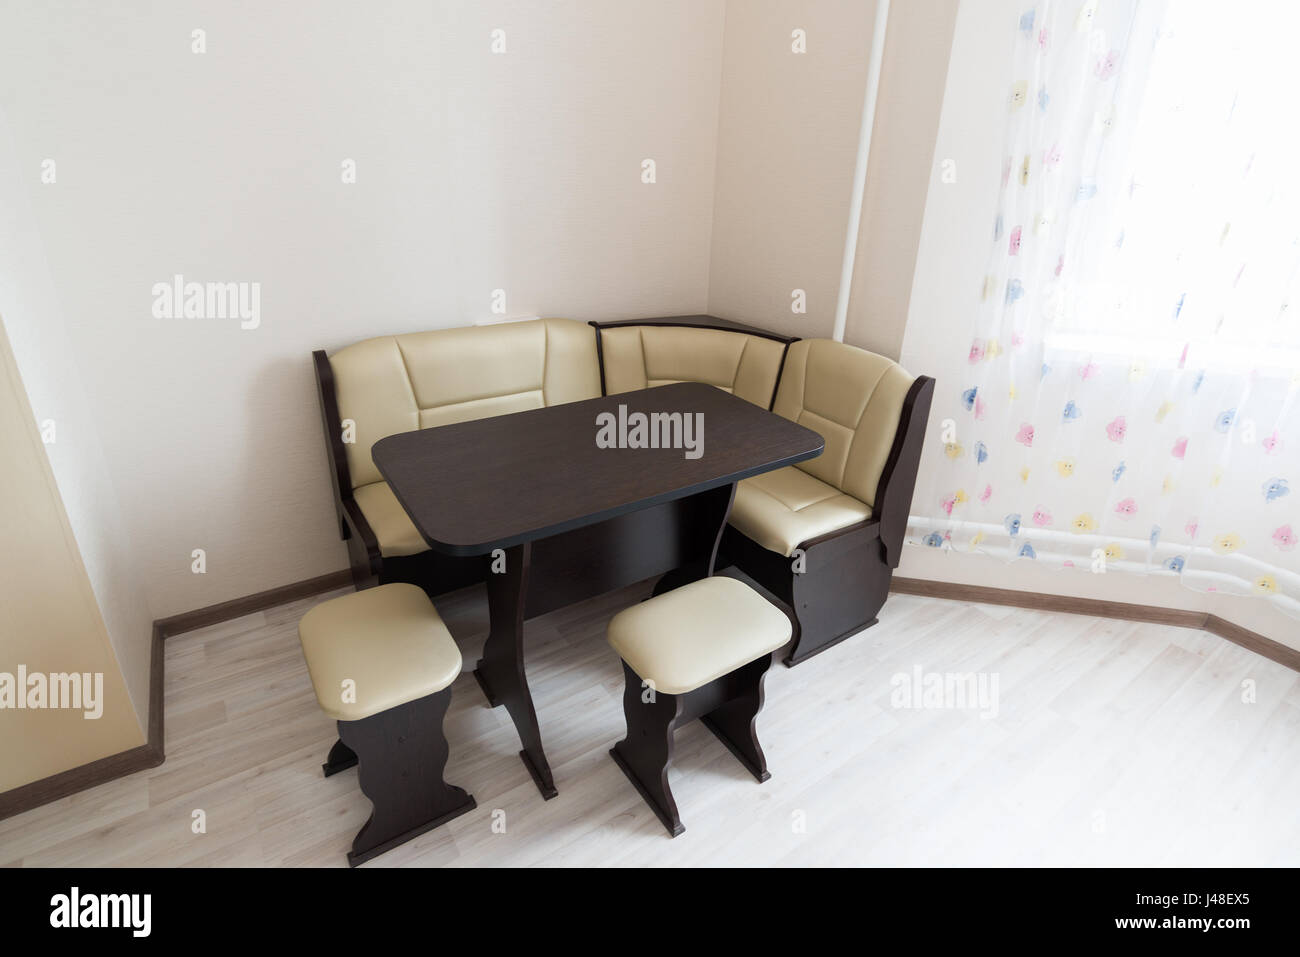 Picture of: Kitchen Corner Sofa And Table In Interior Stock Photo Alamy